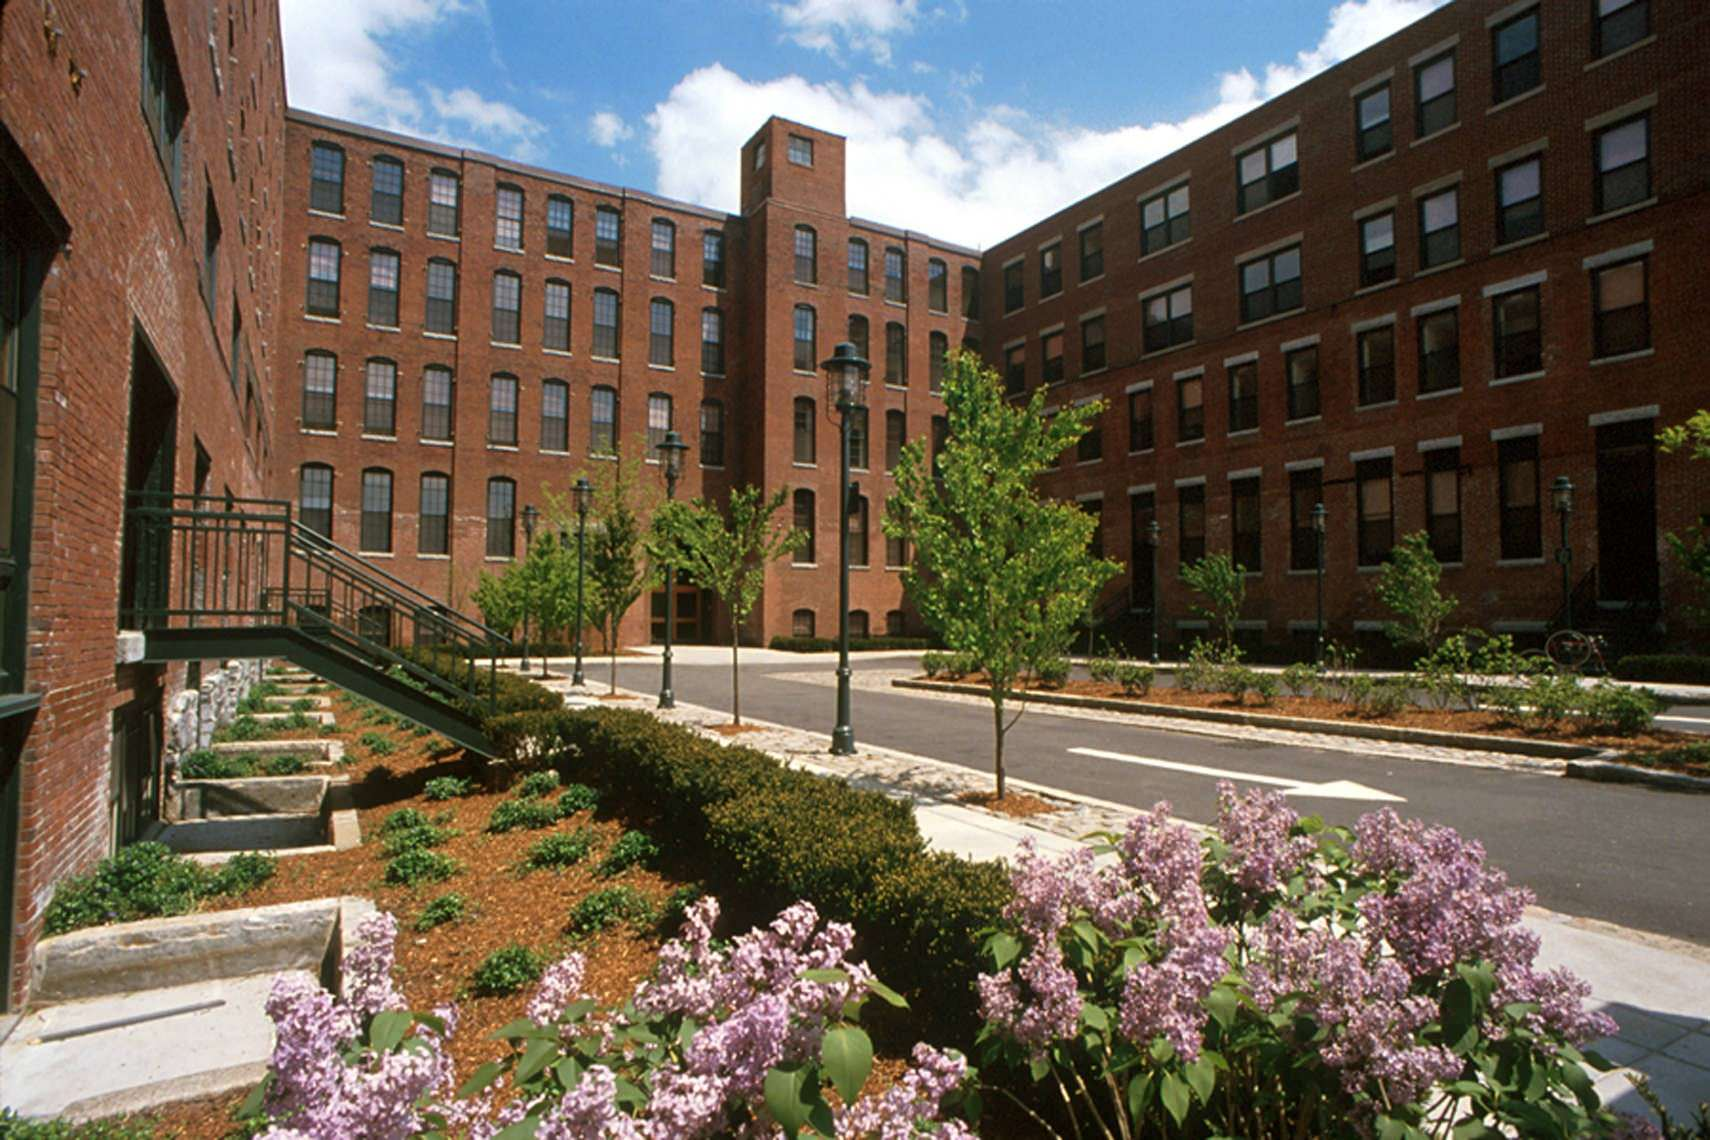 The courtyard of a large brick building that has trees and plants in it as well as a sidewalk around